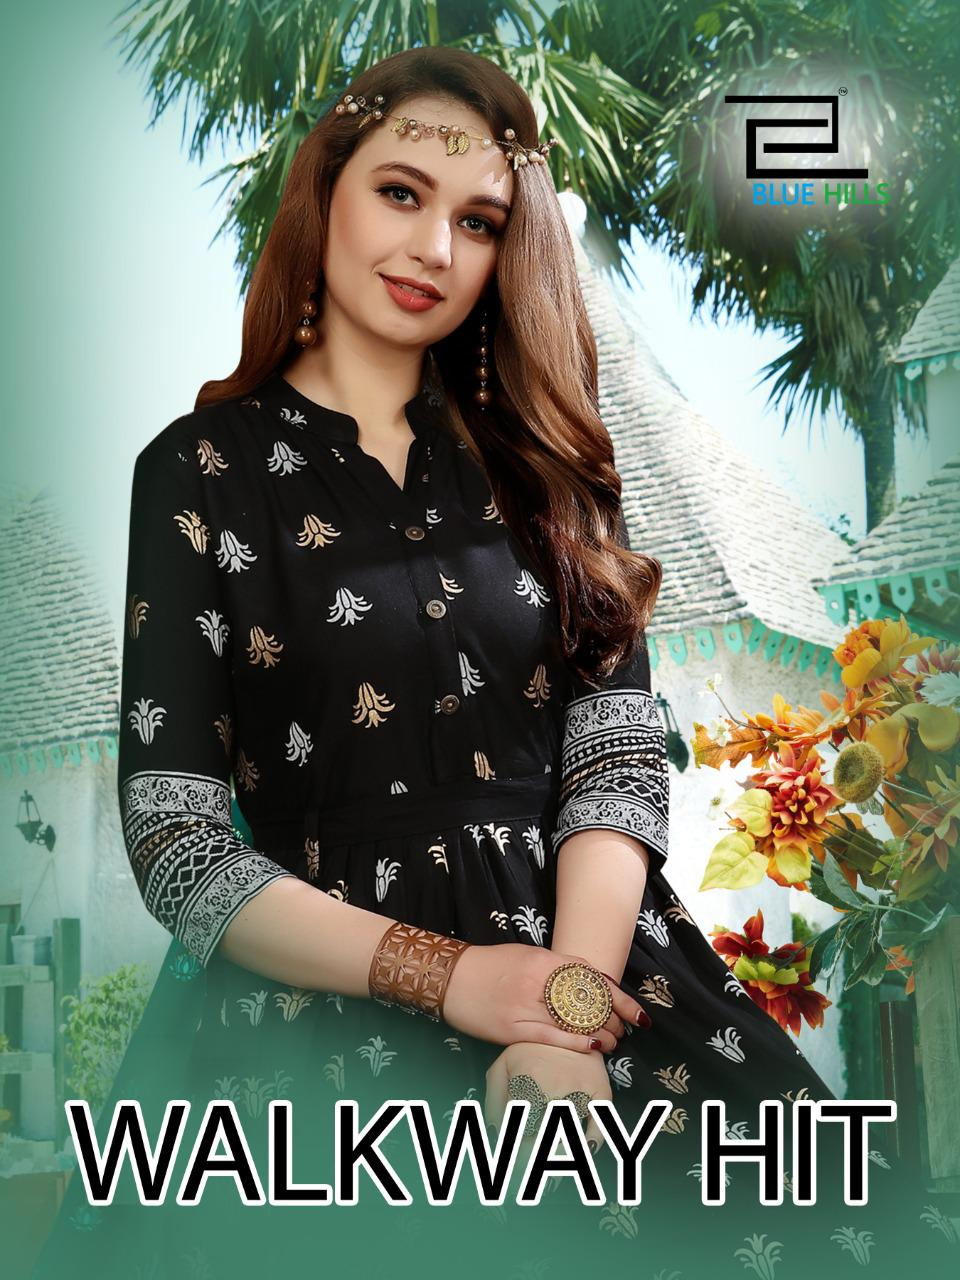 Blue Hills Walkway Hit Kurti Wholesale Catalog 10 Pcs 8 - Blue Hills Walkway Hit Kurti Wholesale Catalog 10 Pcs